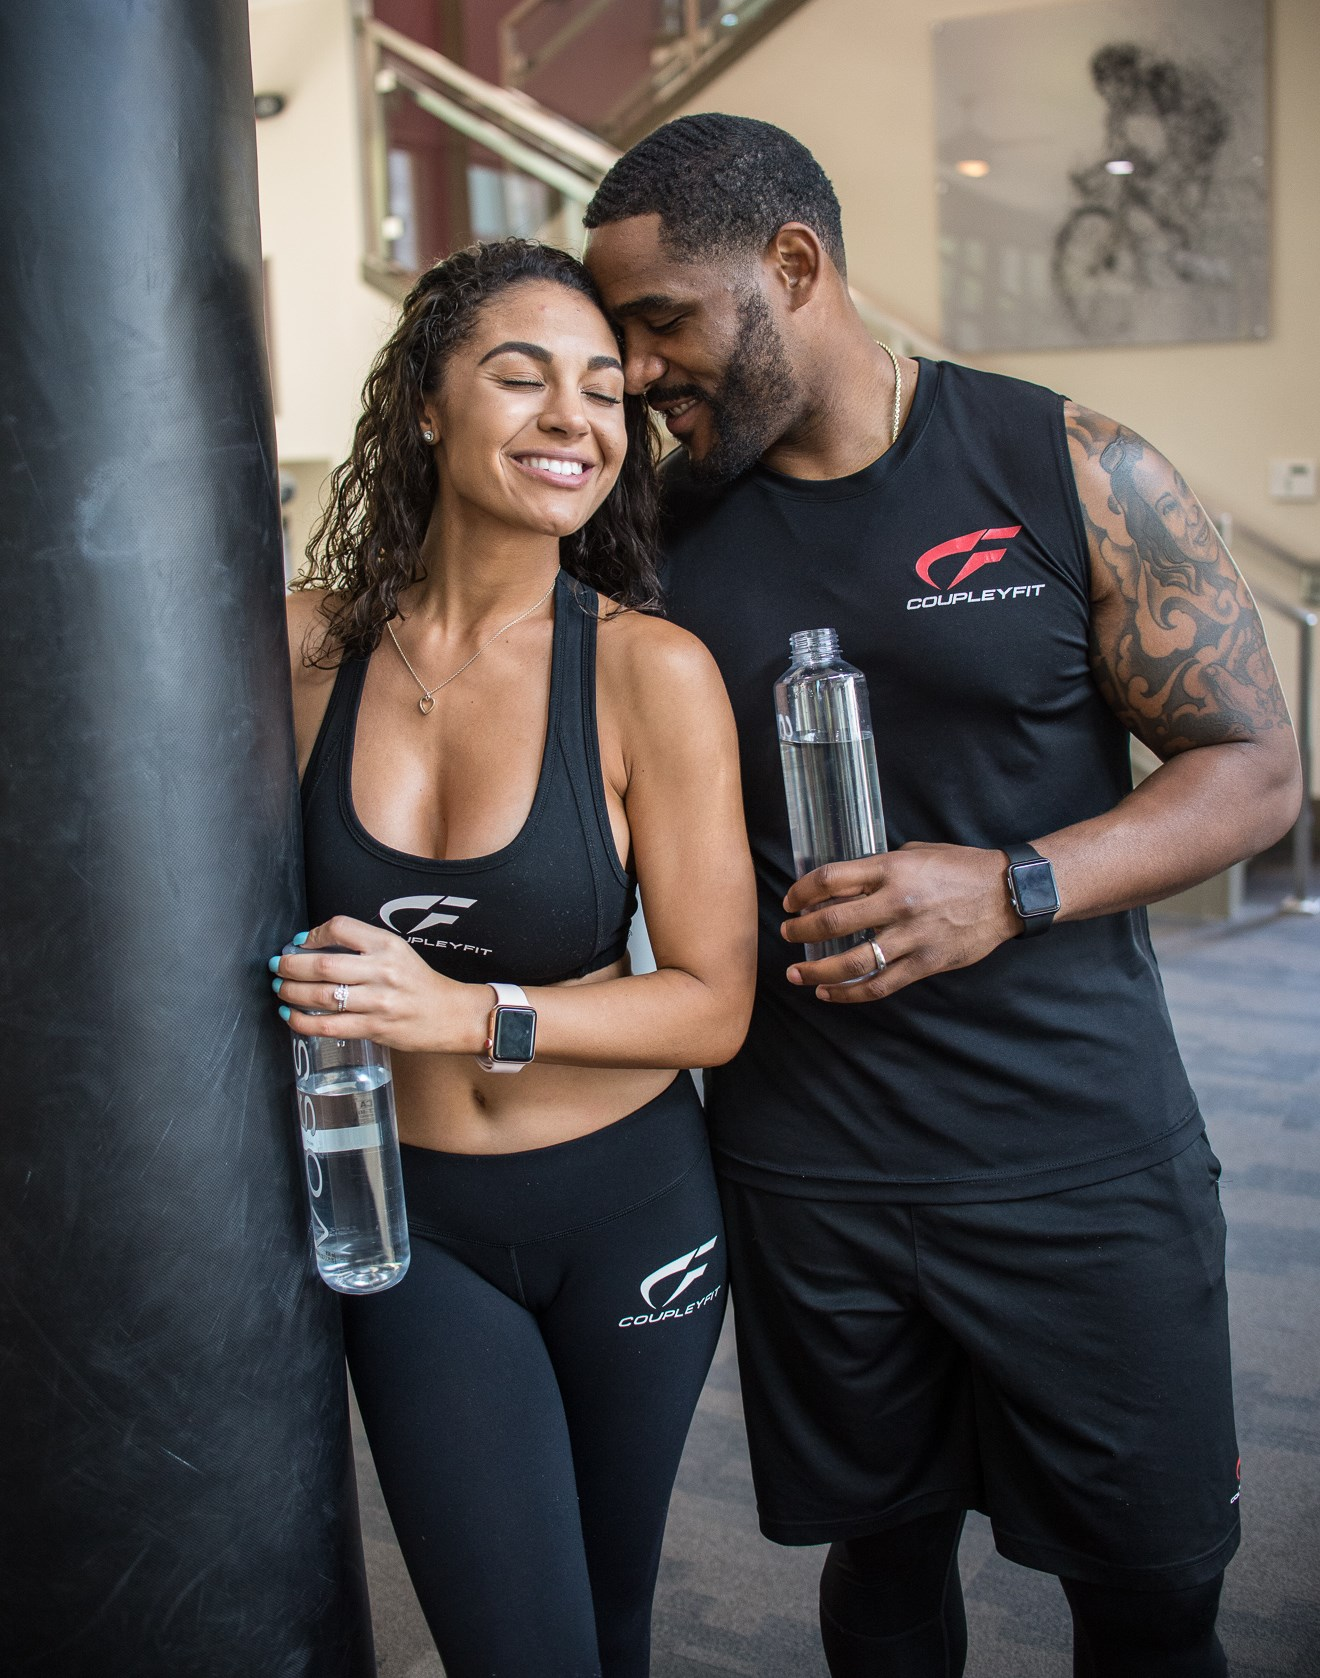 coupleyfit-summer-fitness-guide